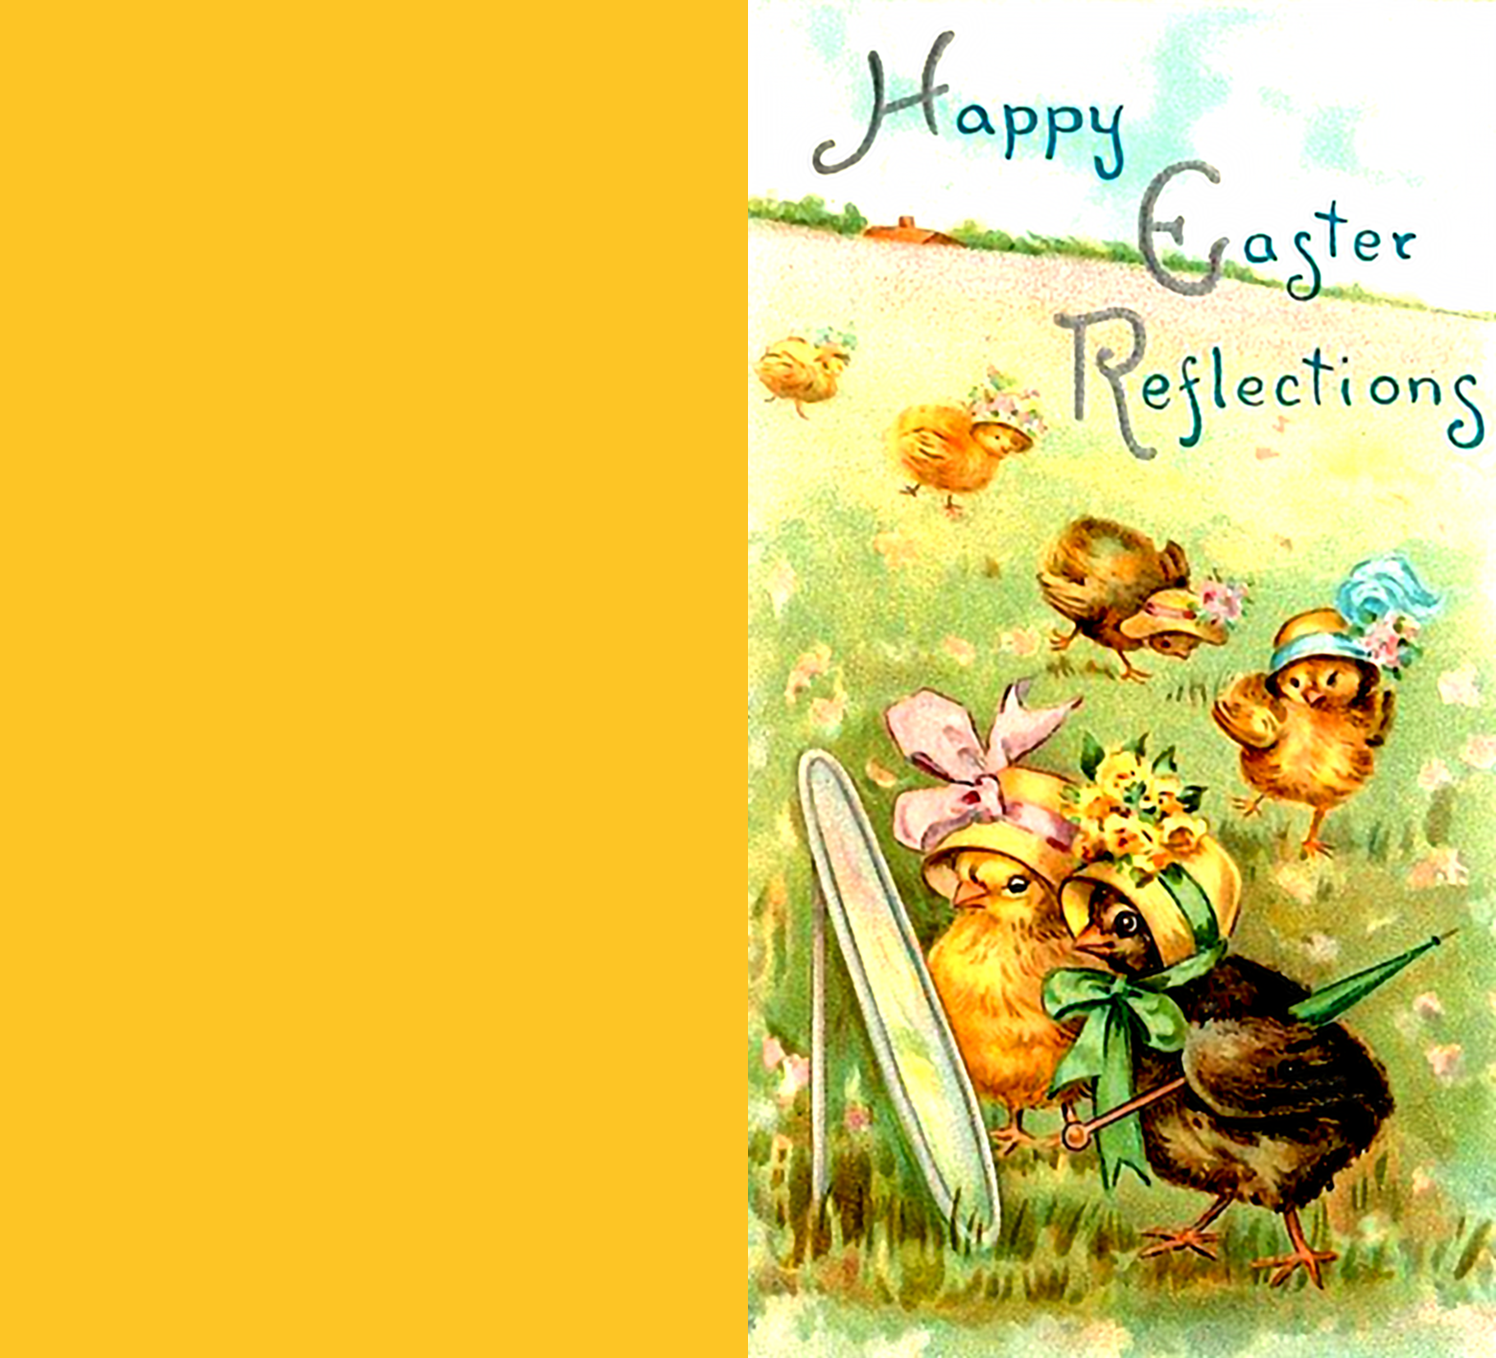 Wonderful vintage Easter greeting card with cute little chickens.